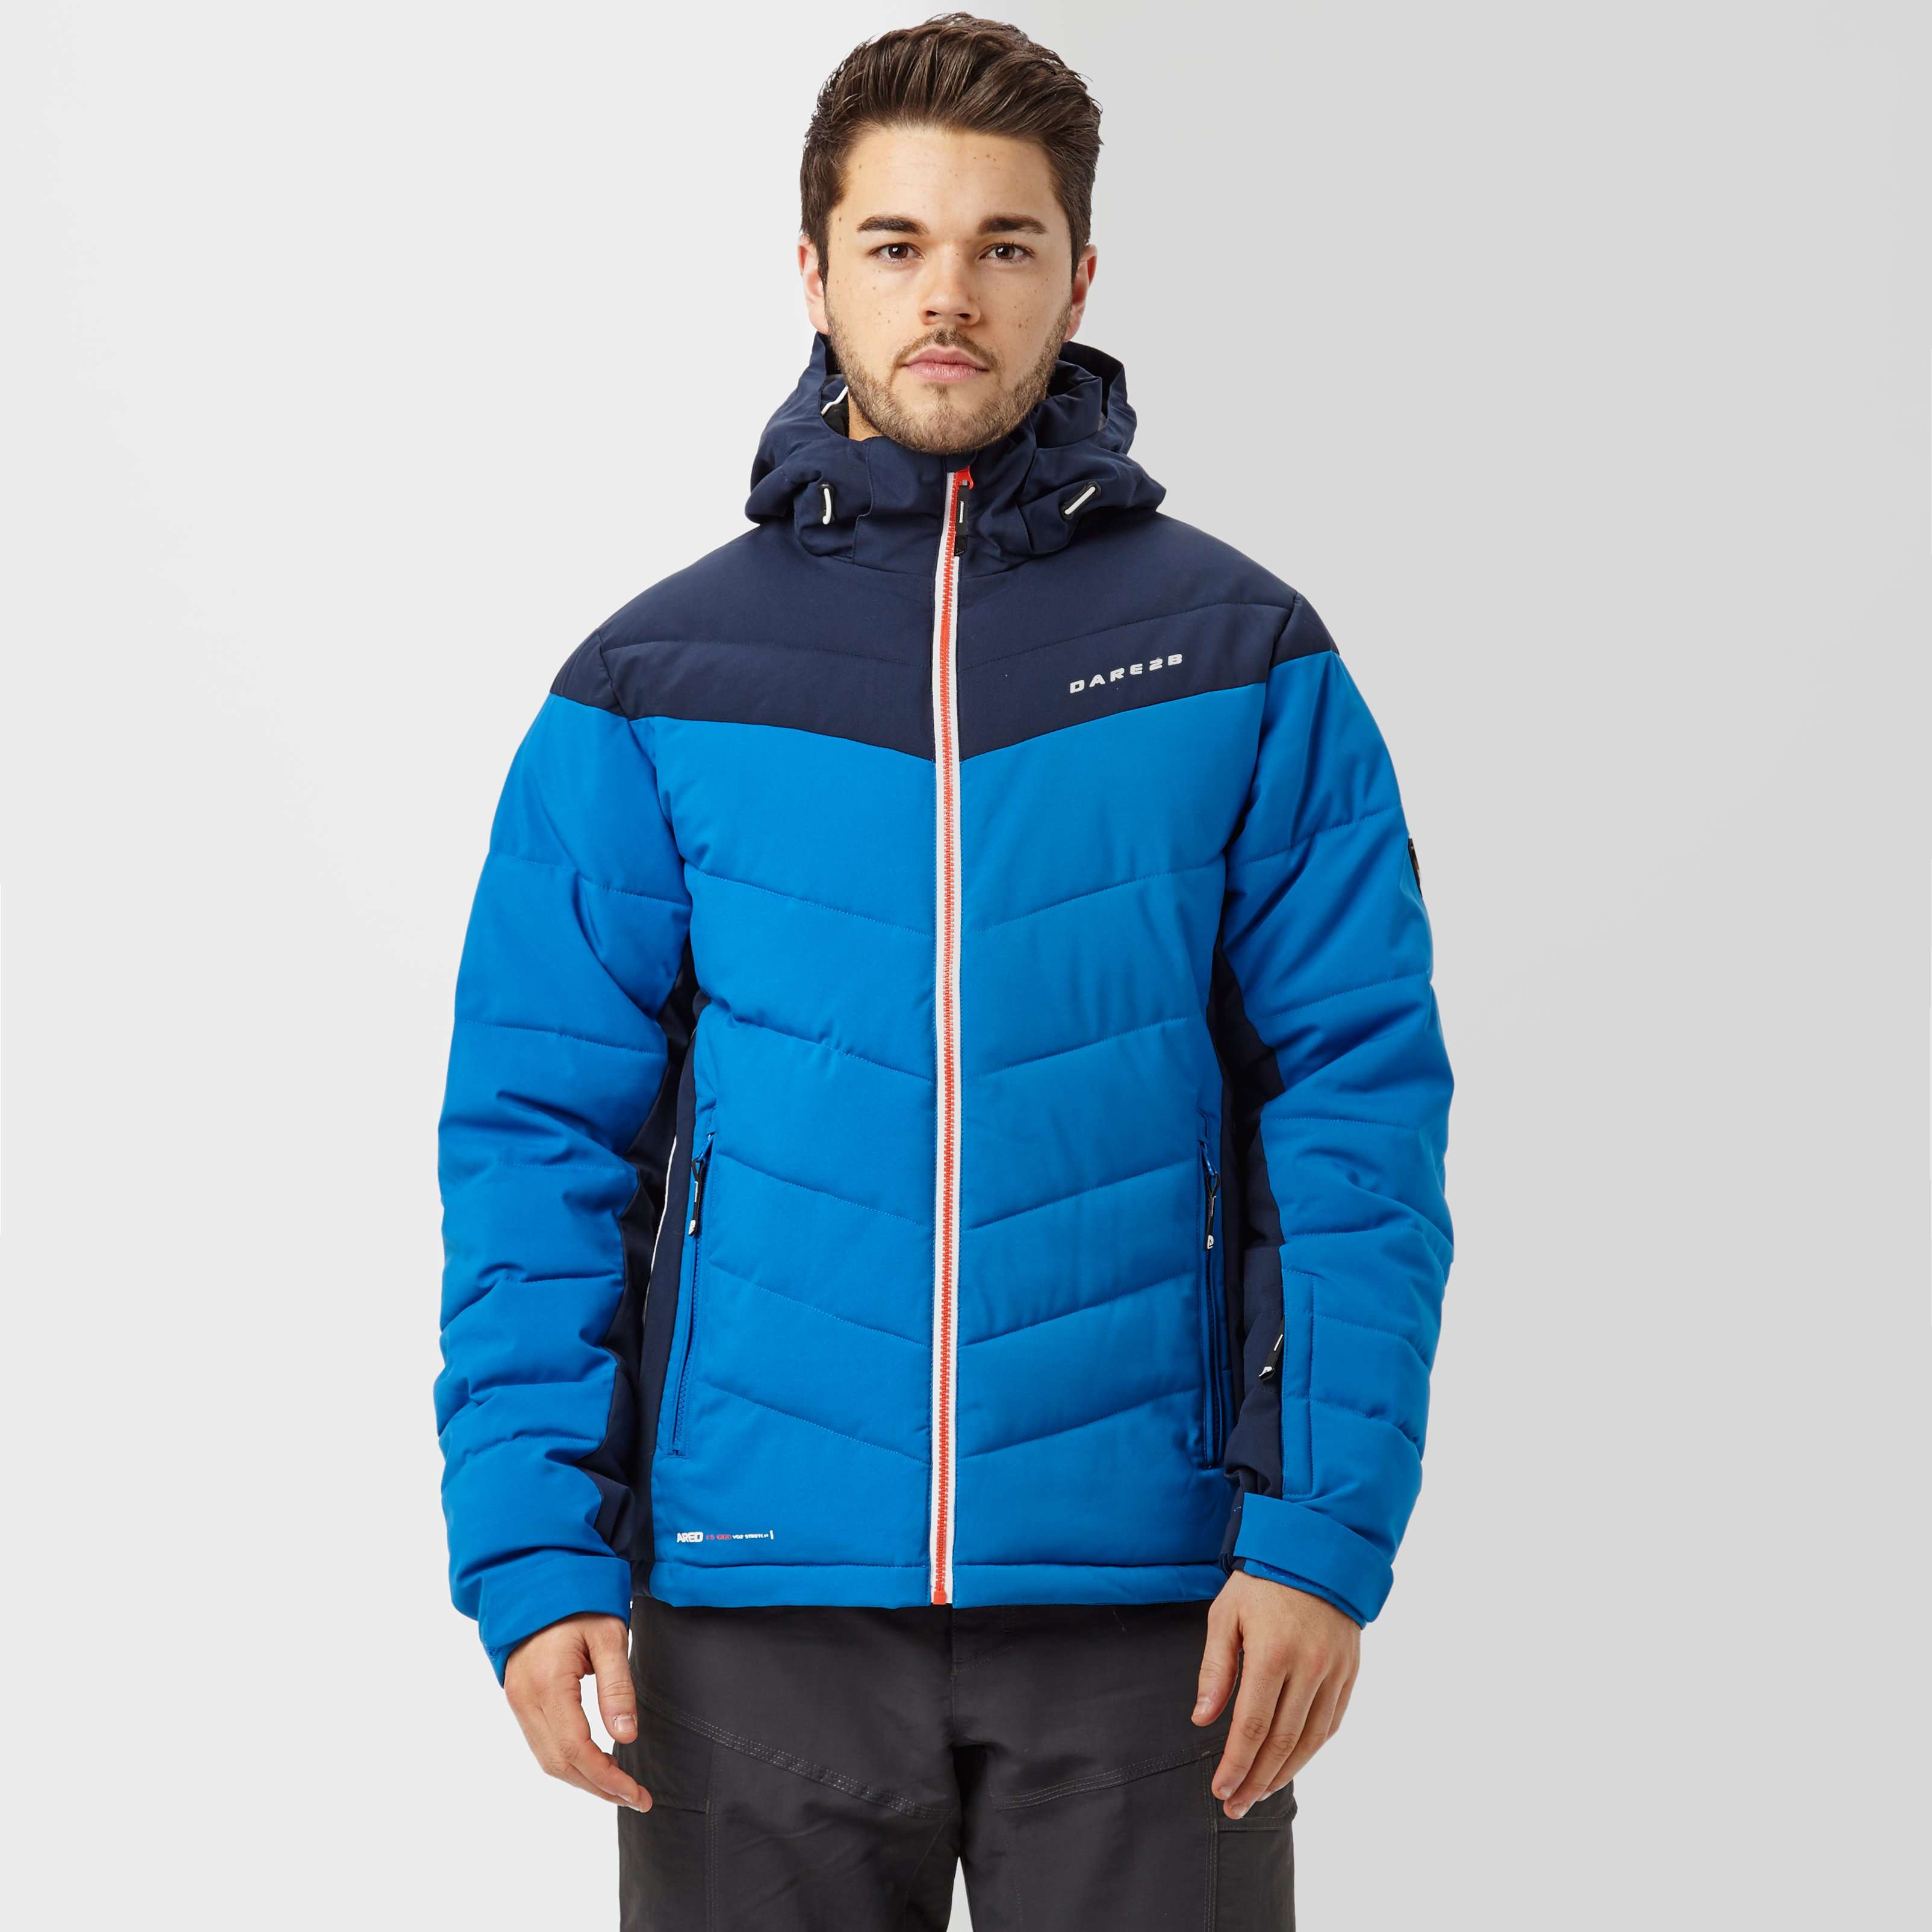 DARE 2B Men's Intention Ski Jacket